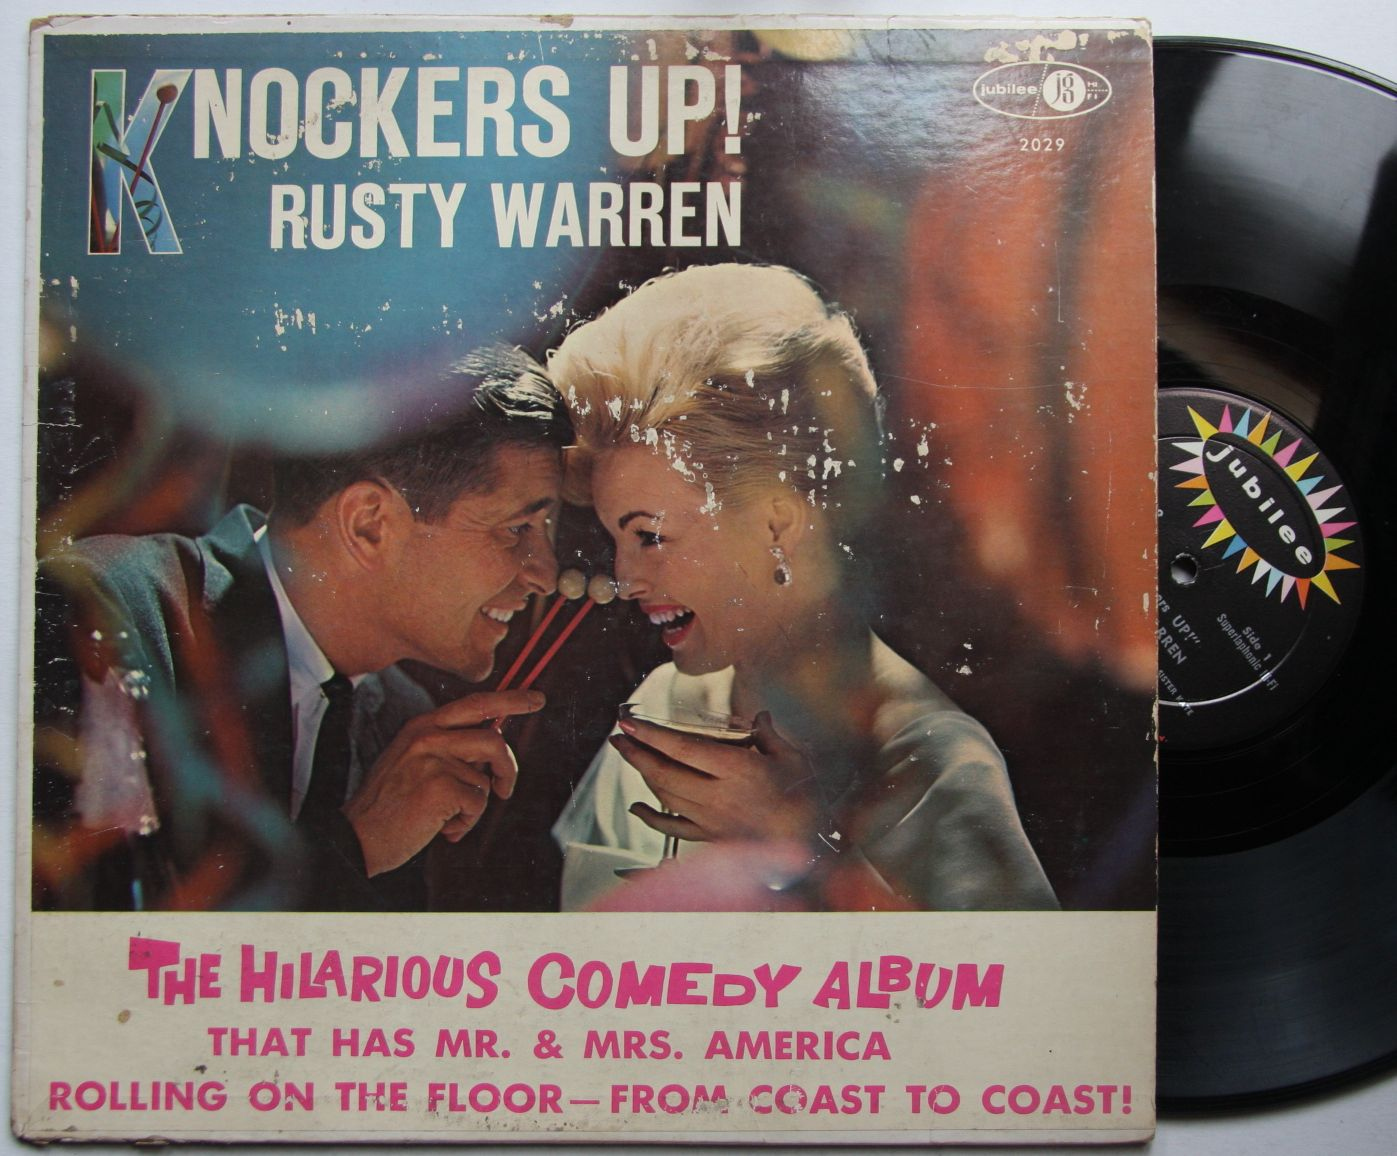 Knockers Up! - Rusty Warren